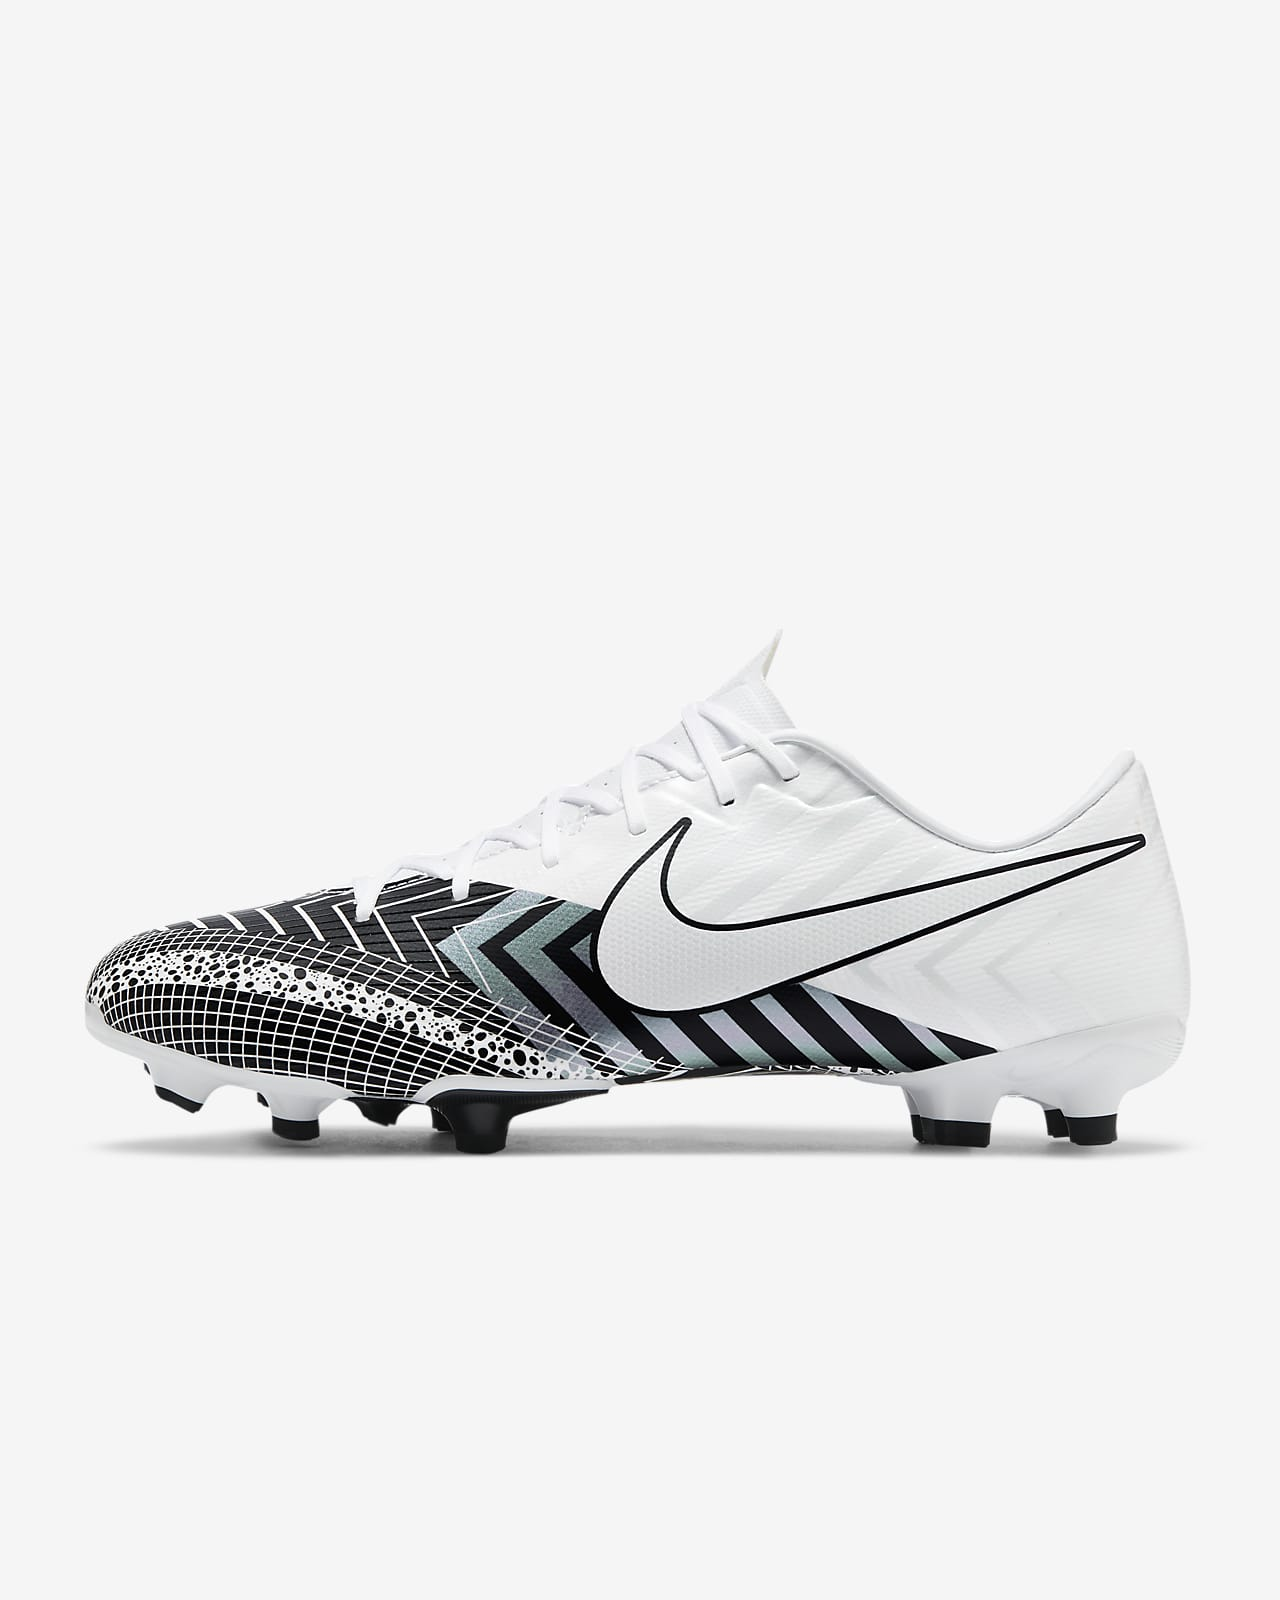 Chaussure de football multi-surfaces à crampons Nike Mercurial Vapor 13 Academy MDS MG